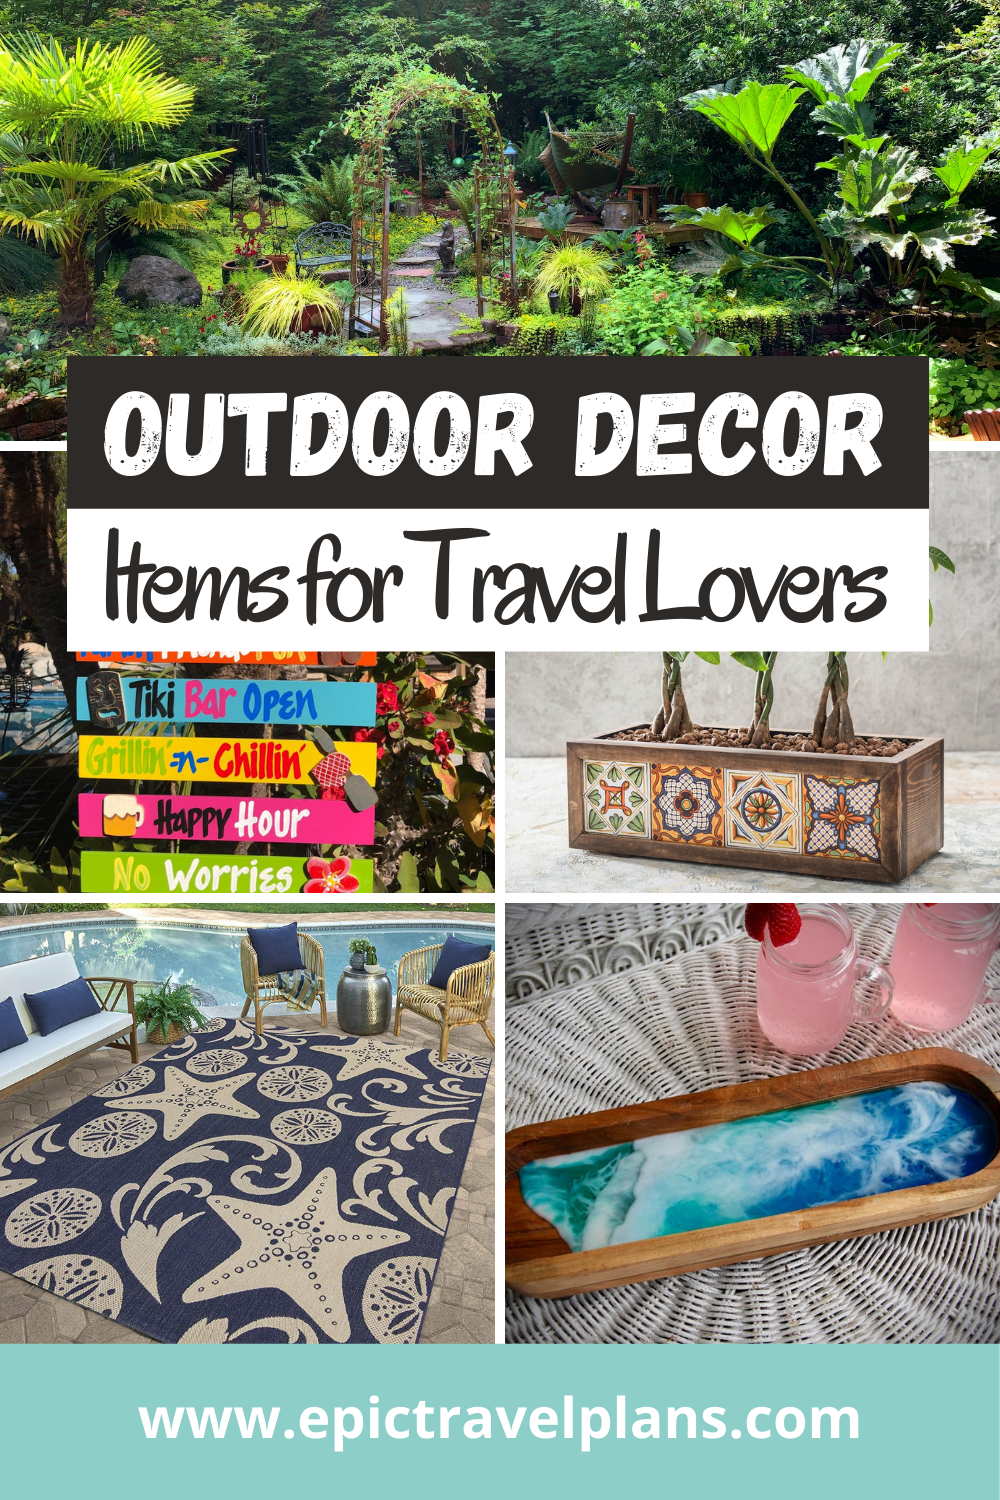 Inspiring outdoor decor items for travel lovers